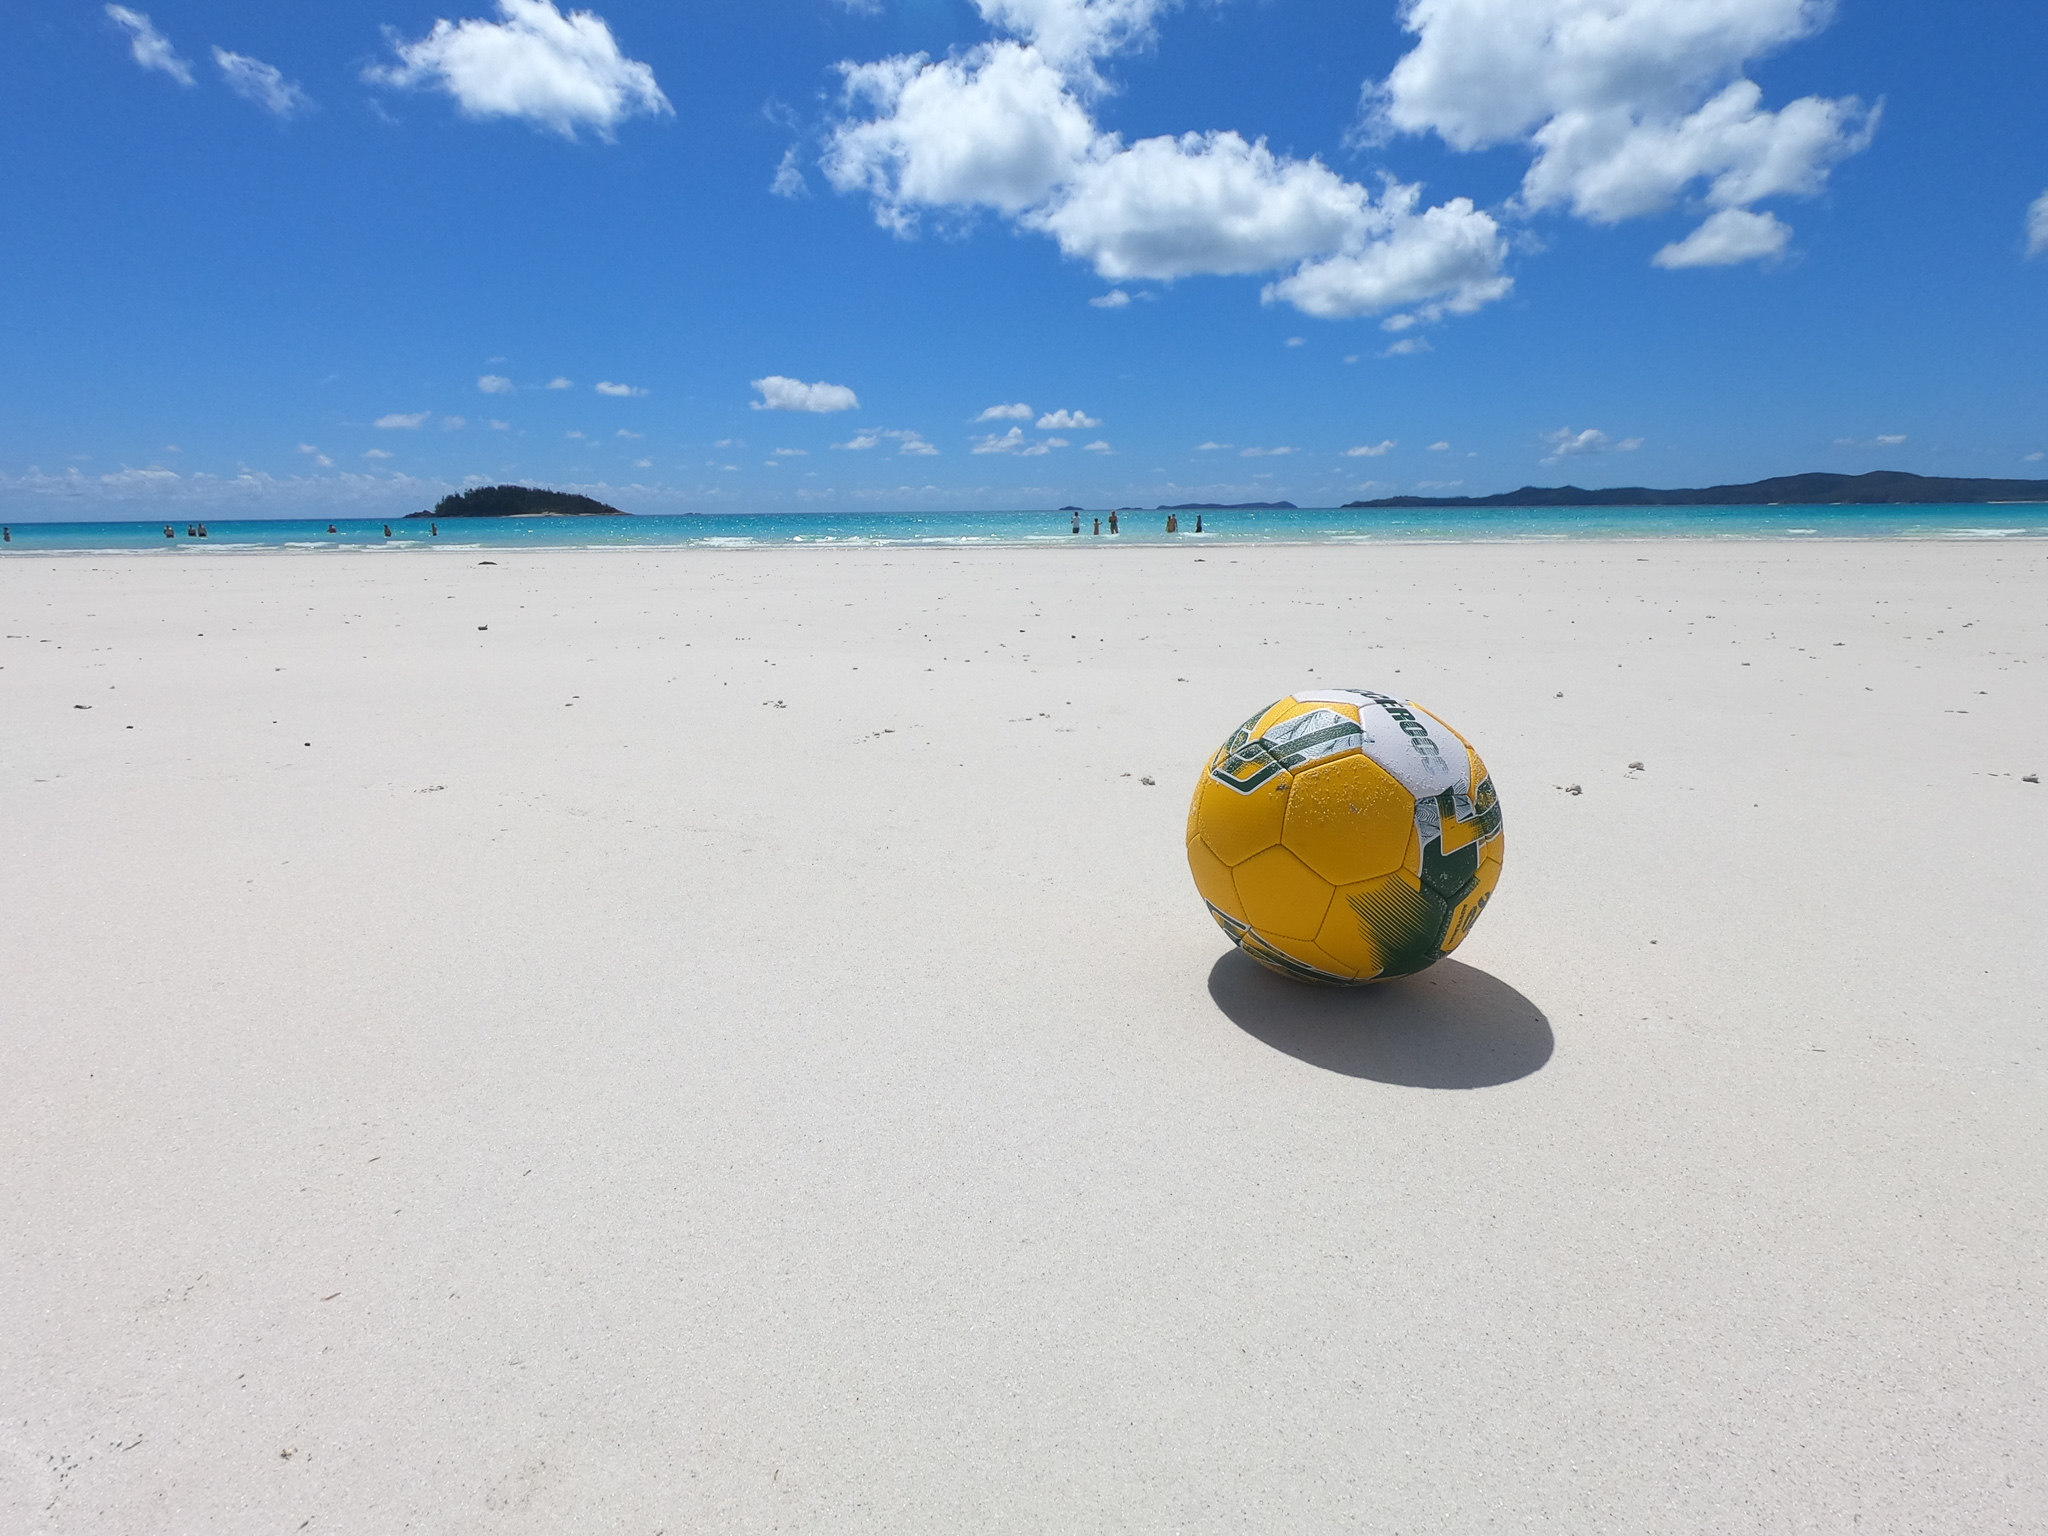 Airlie Beach Express - Half-day of fun in the Whitsundays!